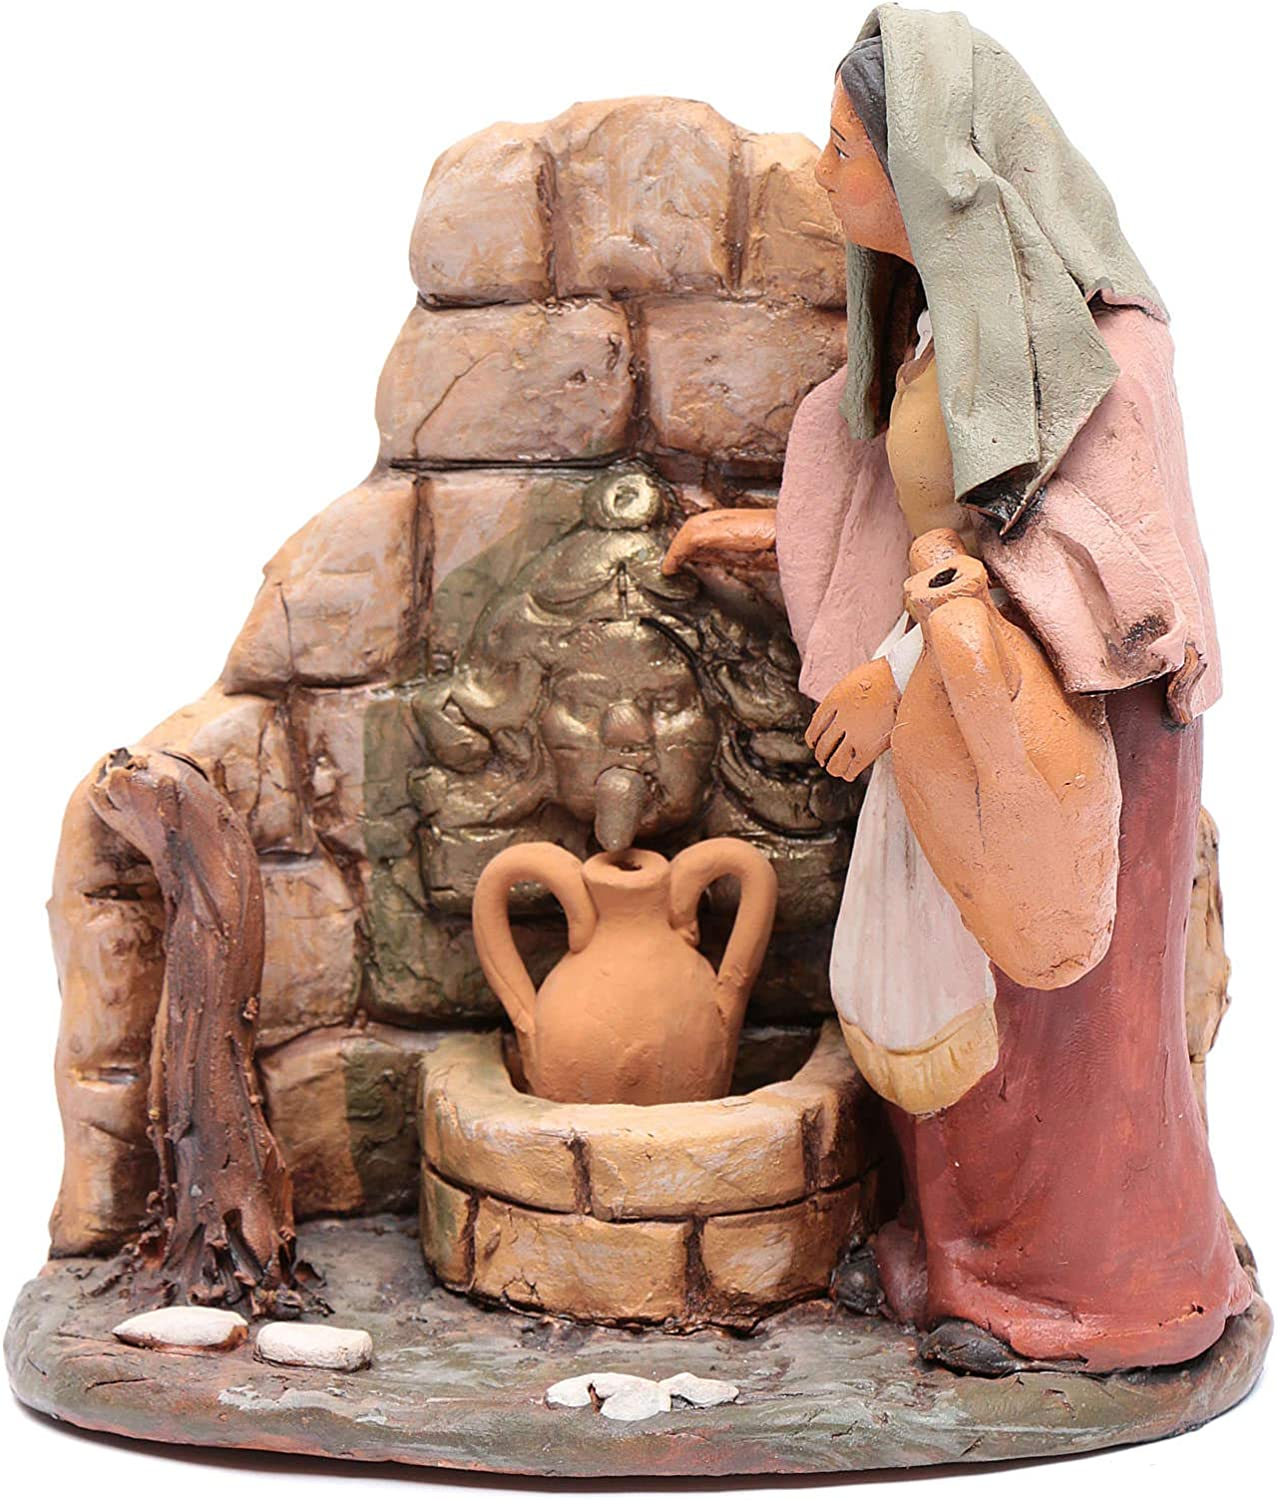 Holyart Courier shipping free shipping Woman at The famous Deruta Fountain 18cm